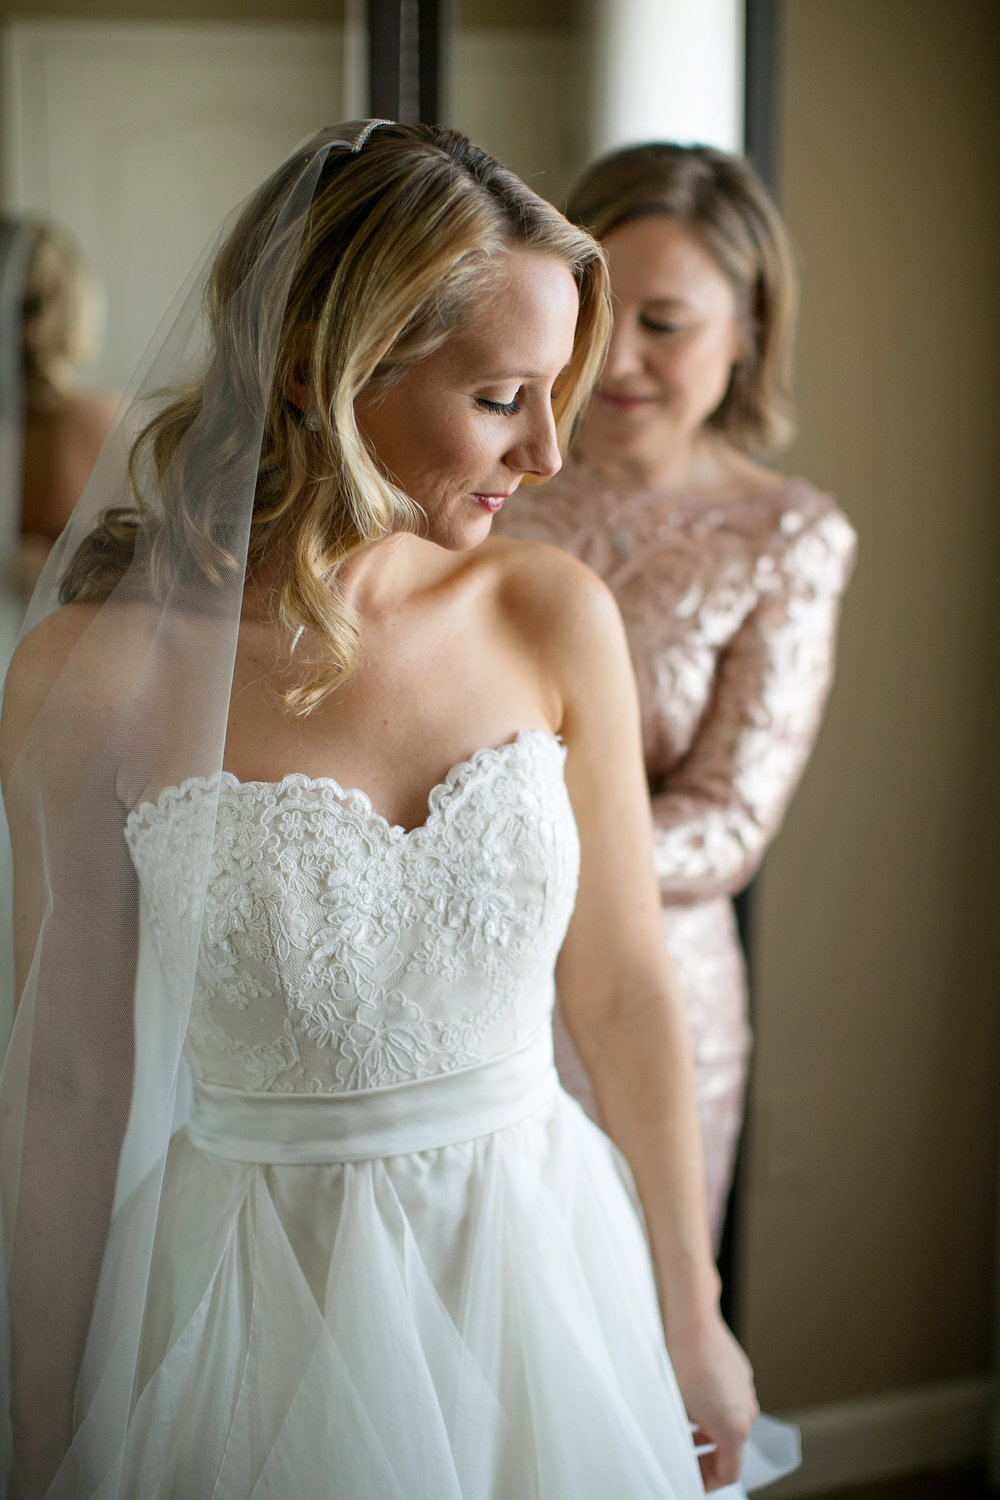 summerour-studio-bridal-suite-atlanta-wedding